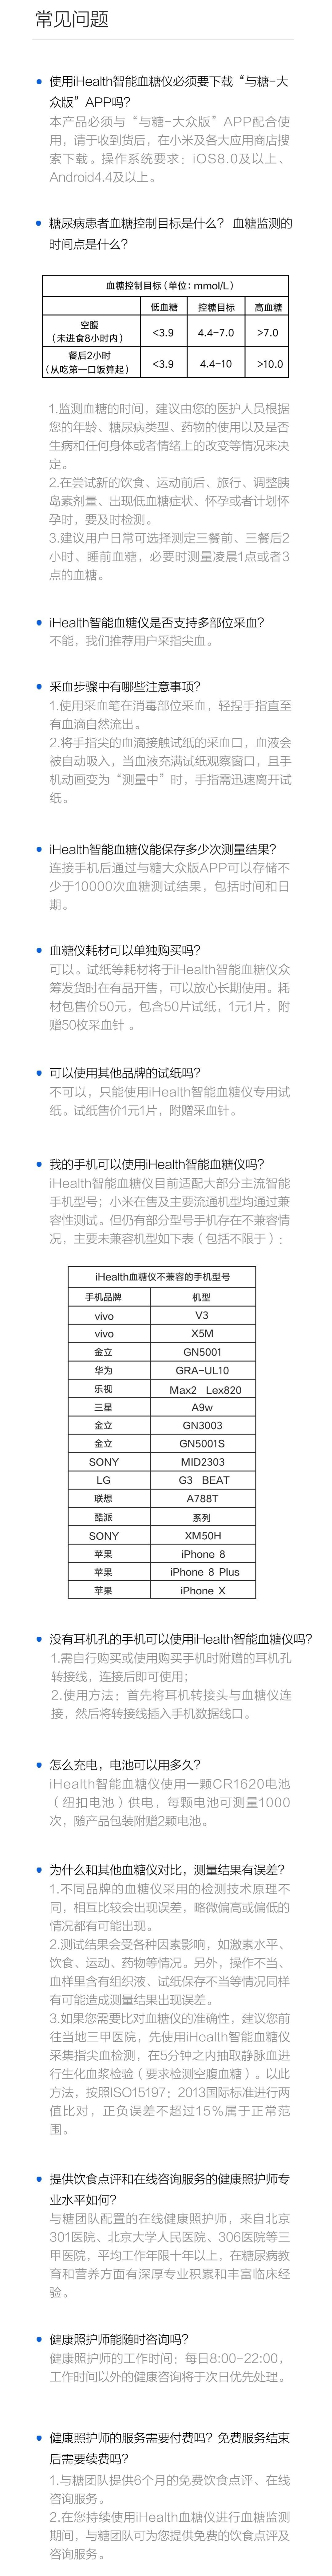 iHealth智能血糖儀